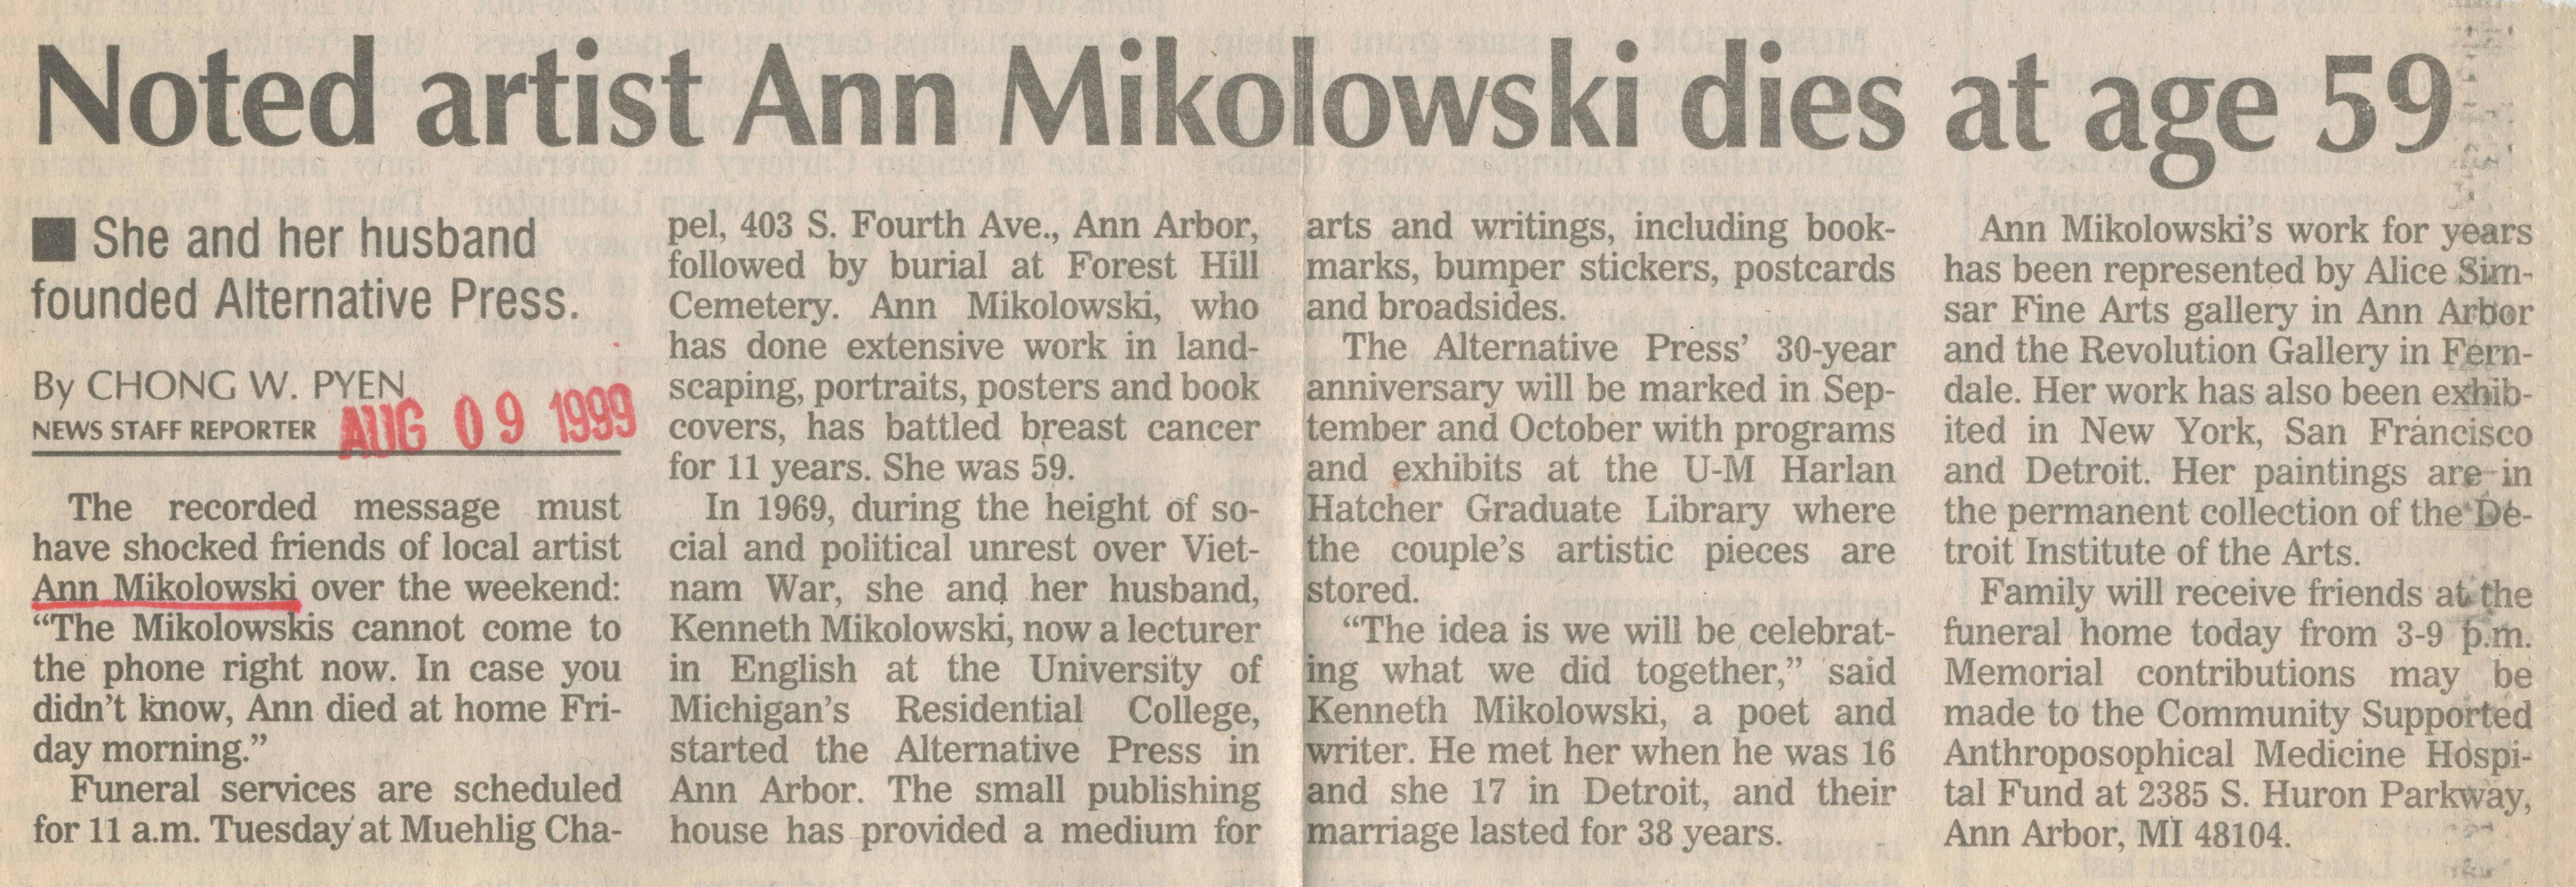 Noted artist Ann Mikolowski dies at age 59 image